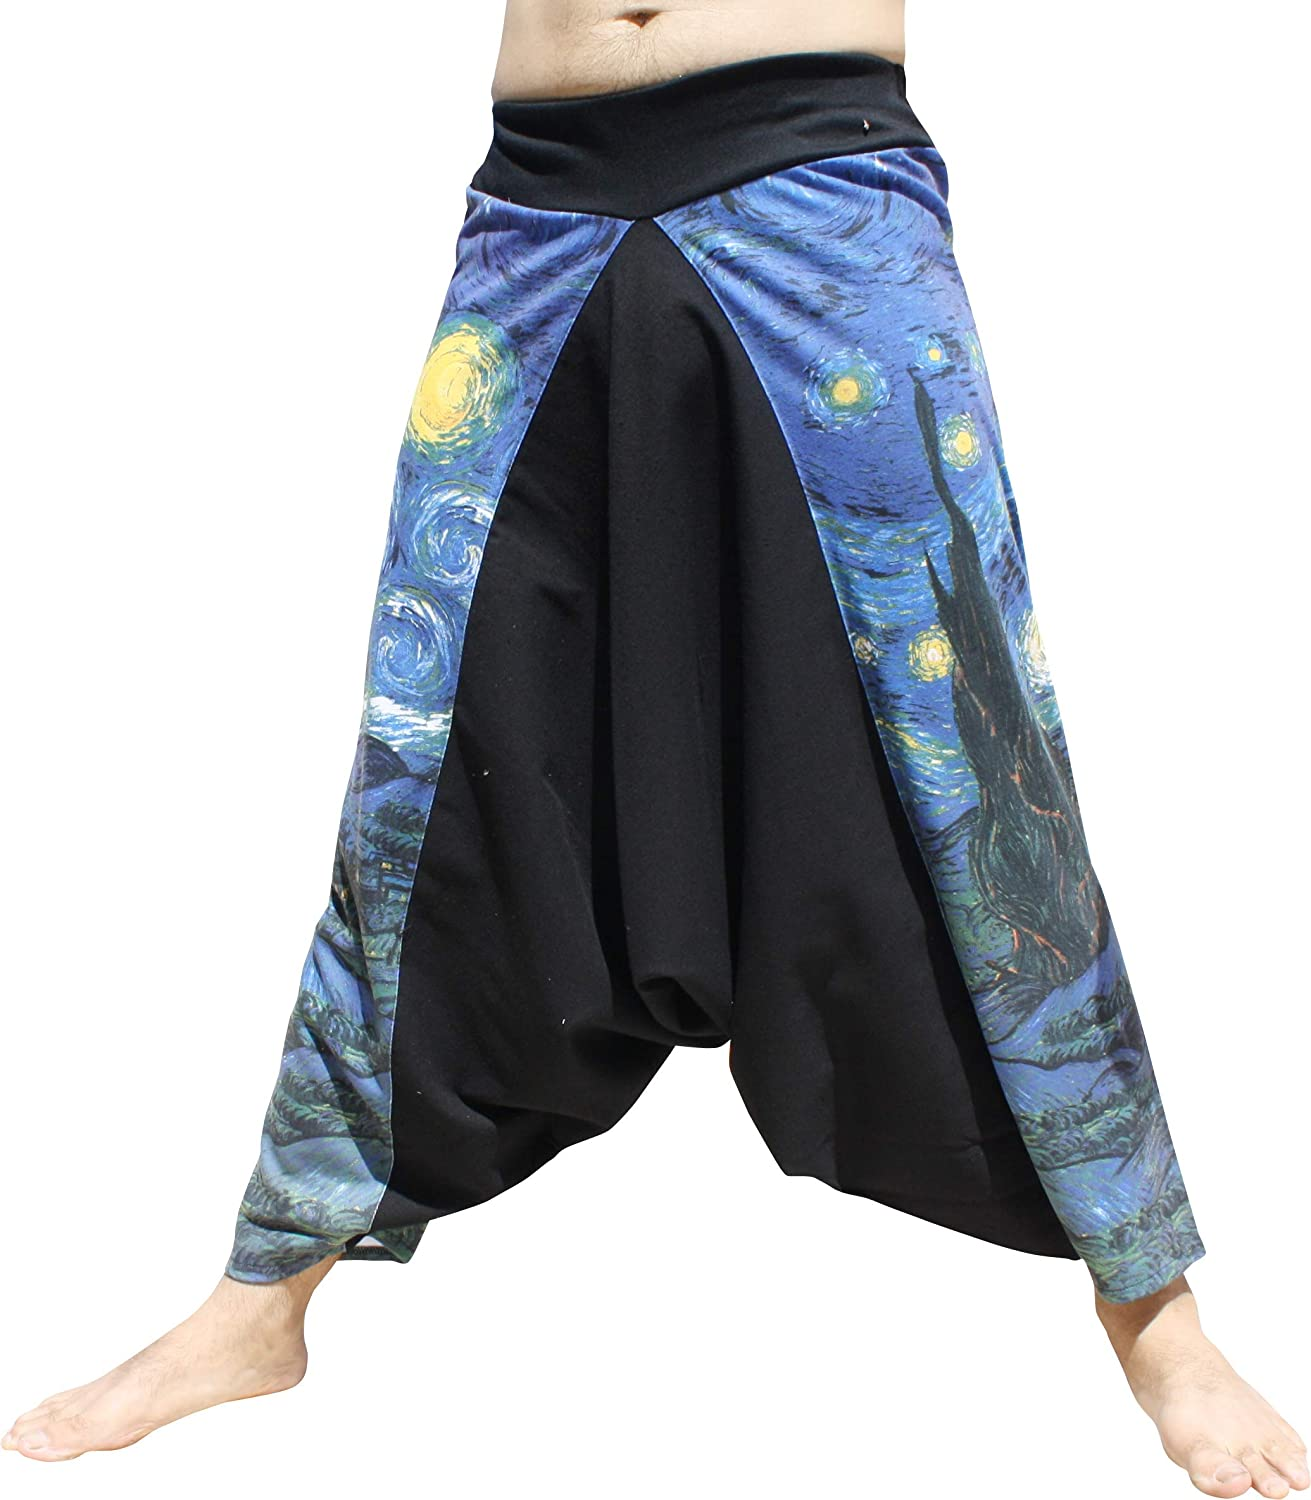 RaanPahMuang Elastic Band Waist Mao Pants Vincent Van Gogh The Starry Night